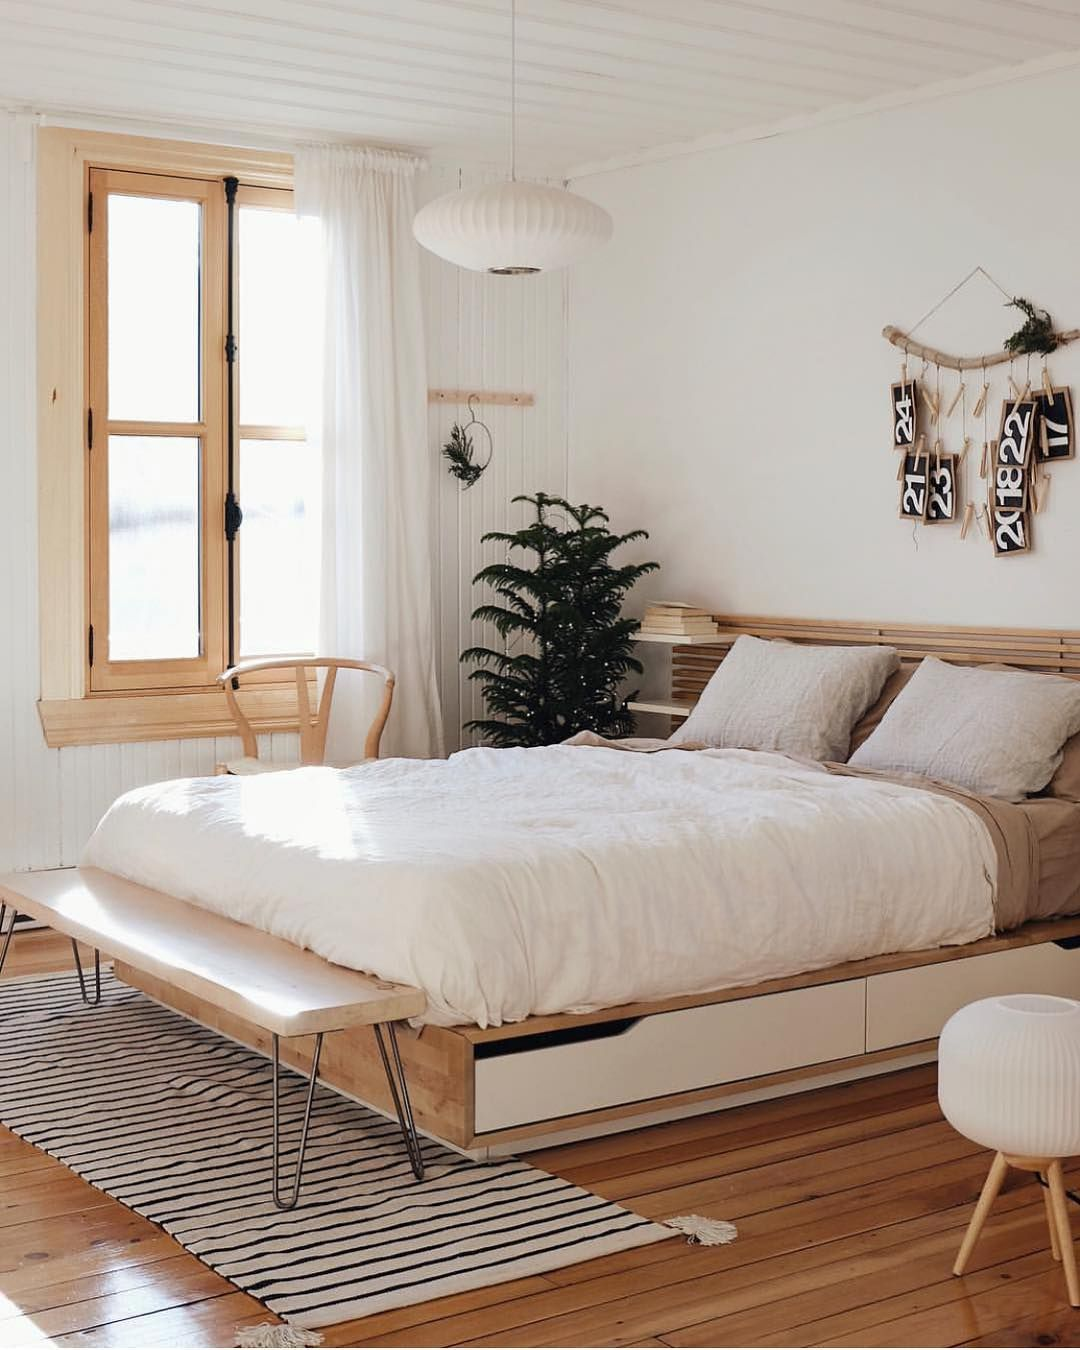 Mid Century Boho Scandinavian On Instagram Neutrals And Wood L I F E Beautiful And Serene Bedroom Interior Scandinavian Interior Bedroom Serene Bedroom